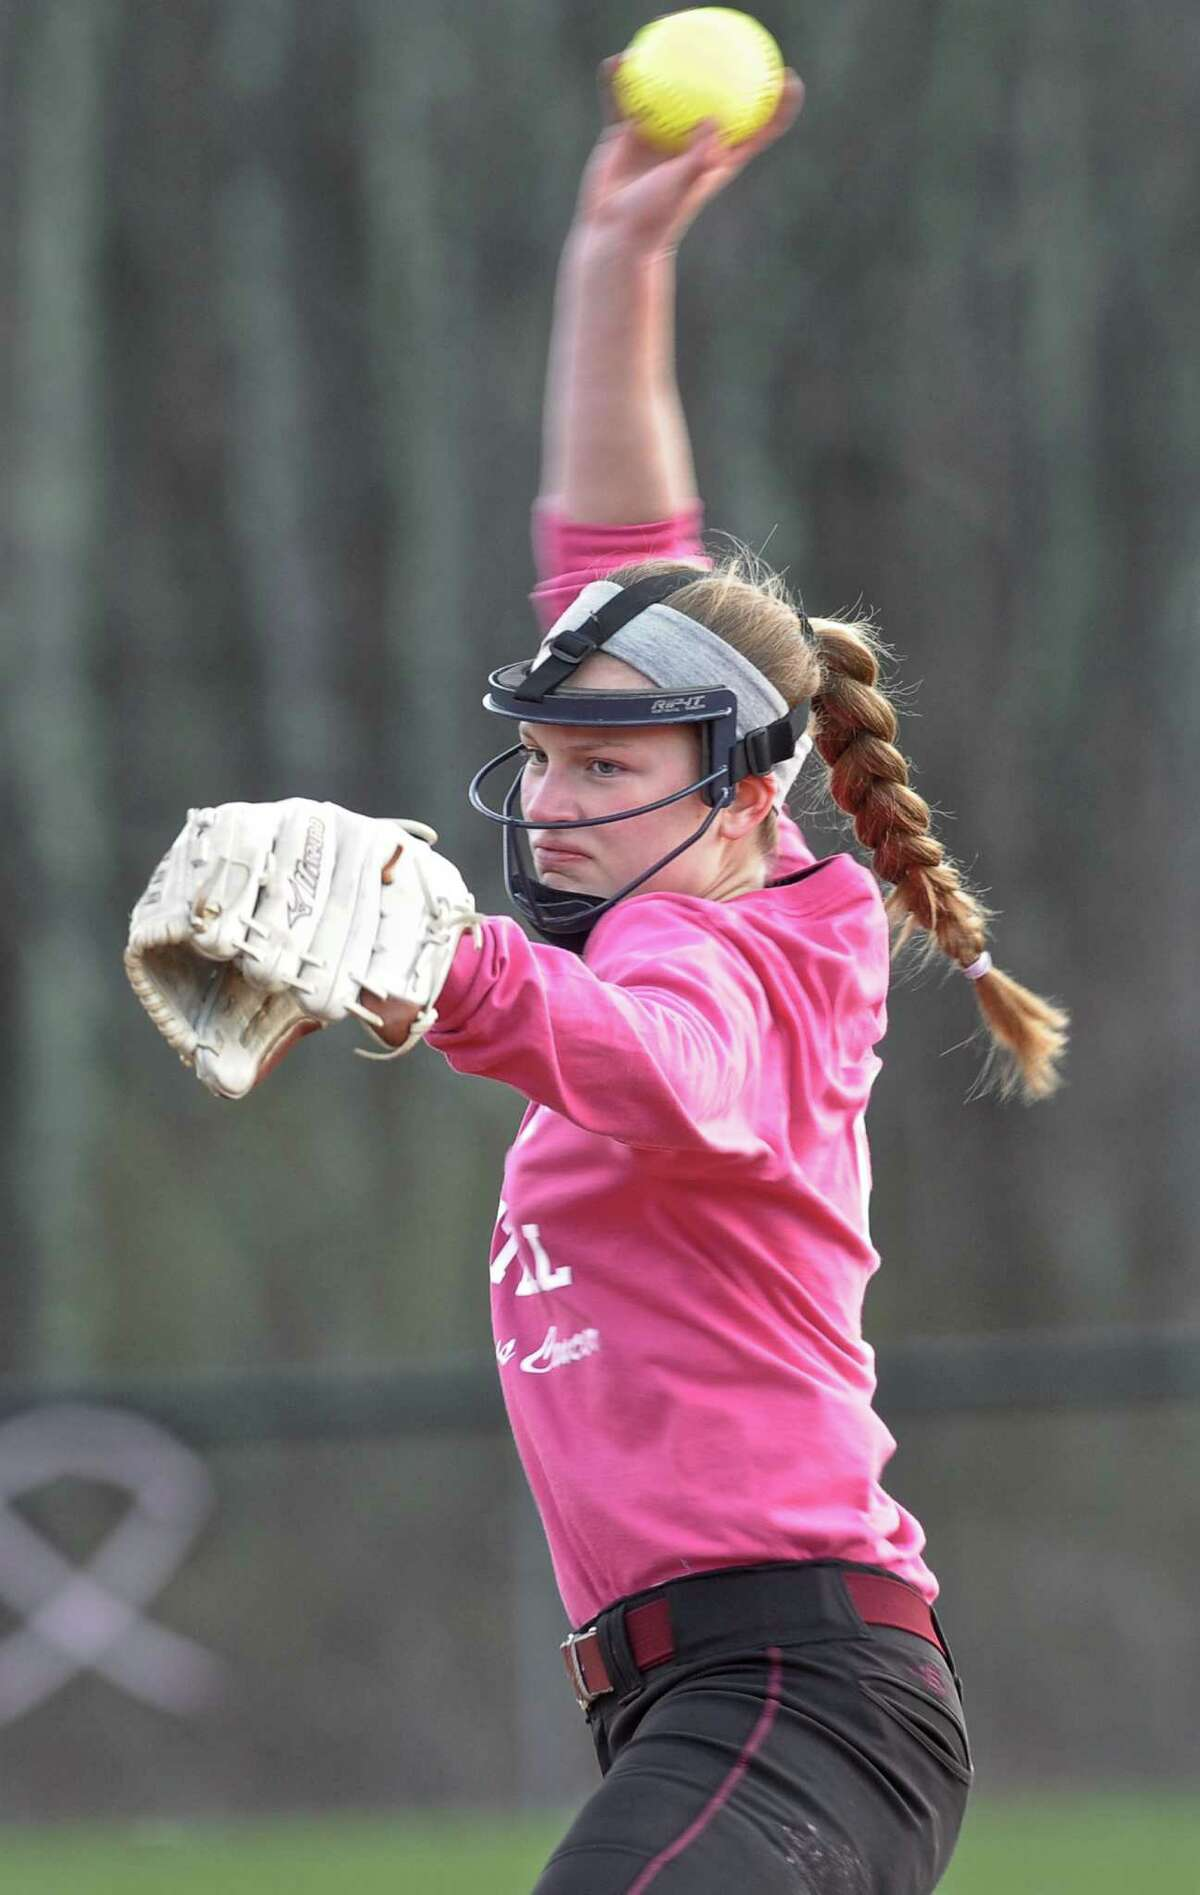 FILE PHOTO: Bethel's Annika Haskett (9) pitches in the girls high school softball game between Abbott Tech and Bethel high schools played at Freebairn Field, in Bethel, Conn, on Thursday night, April 23, 2015.